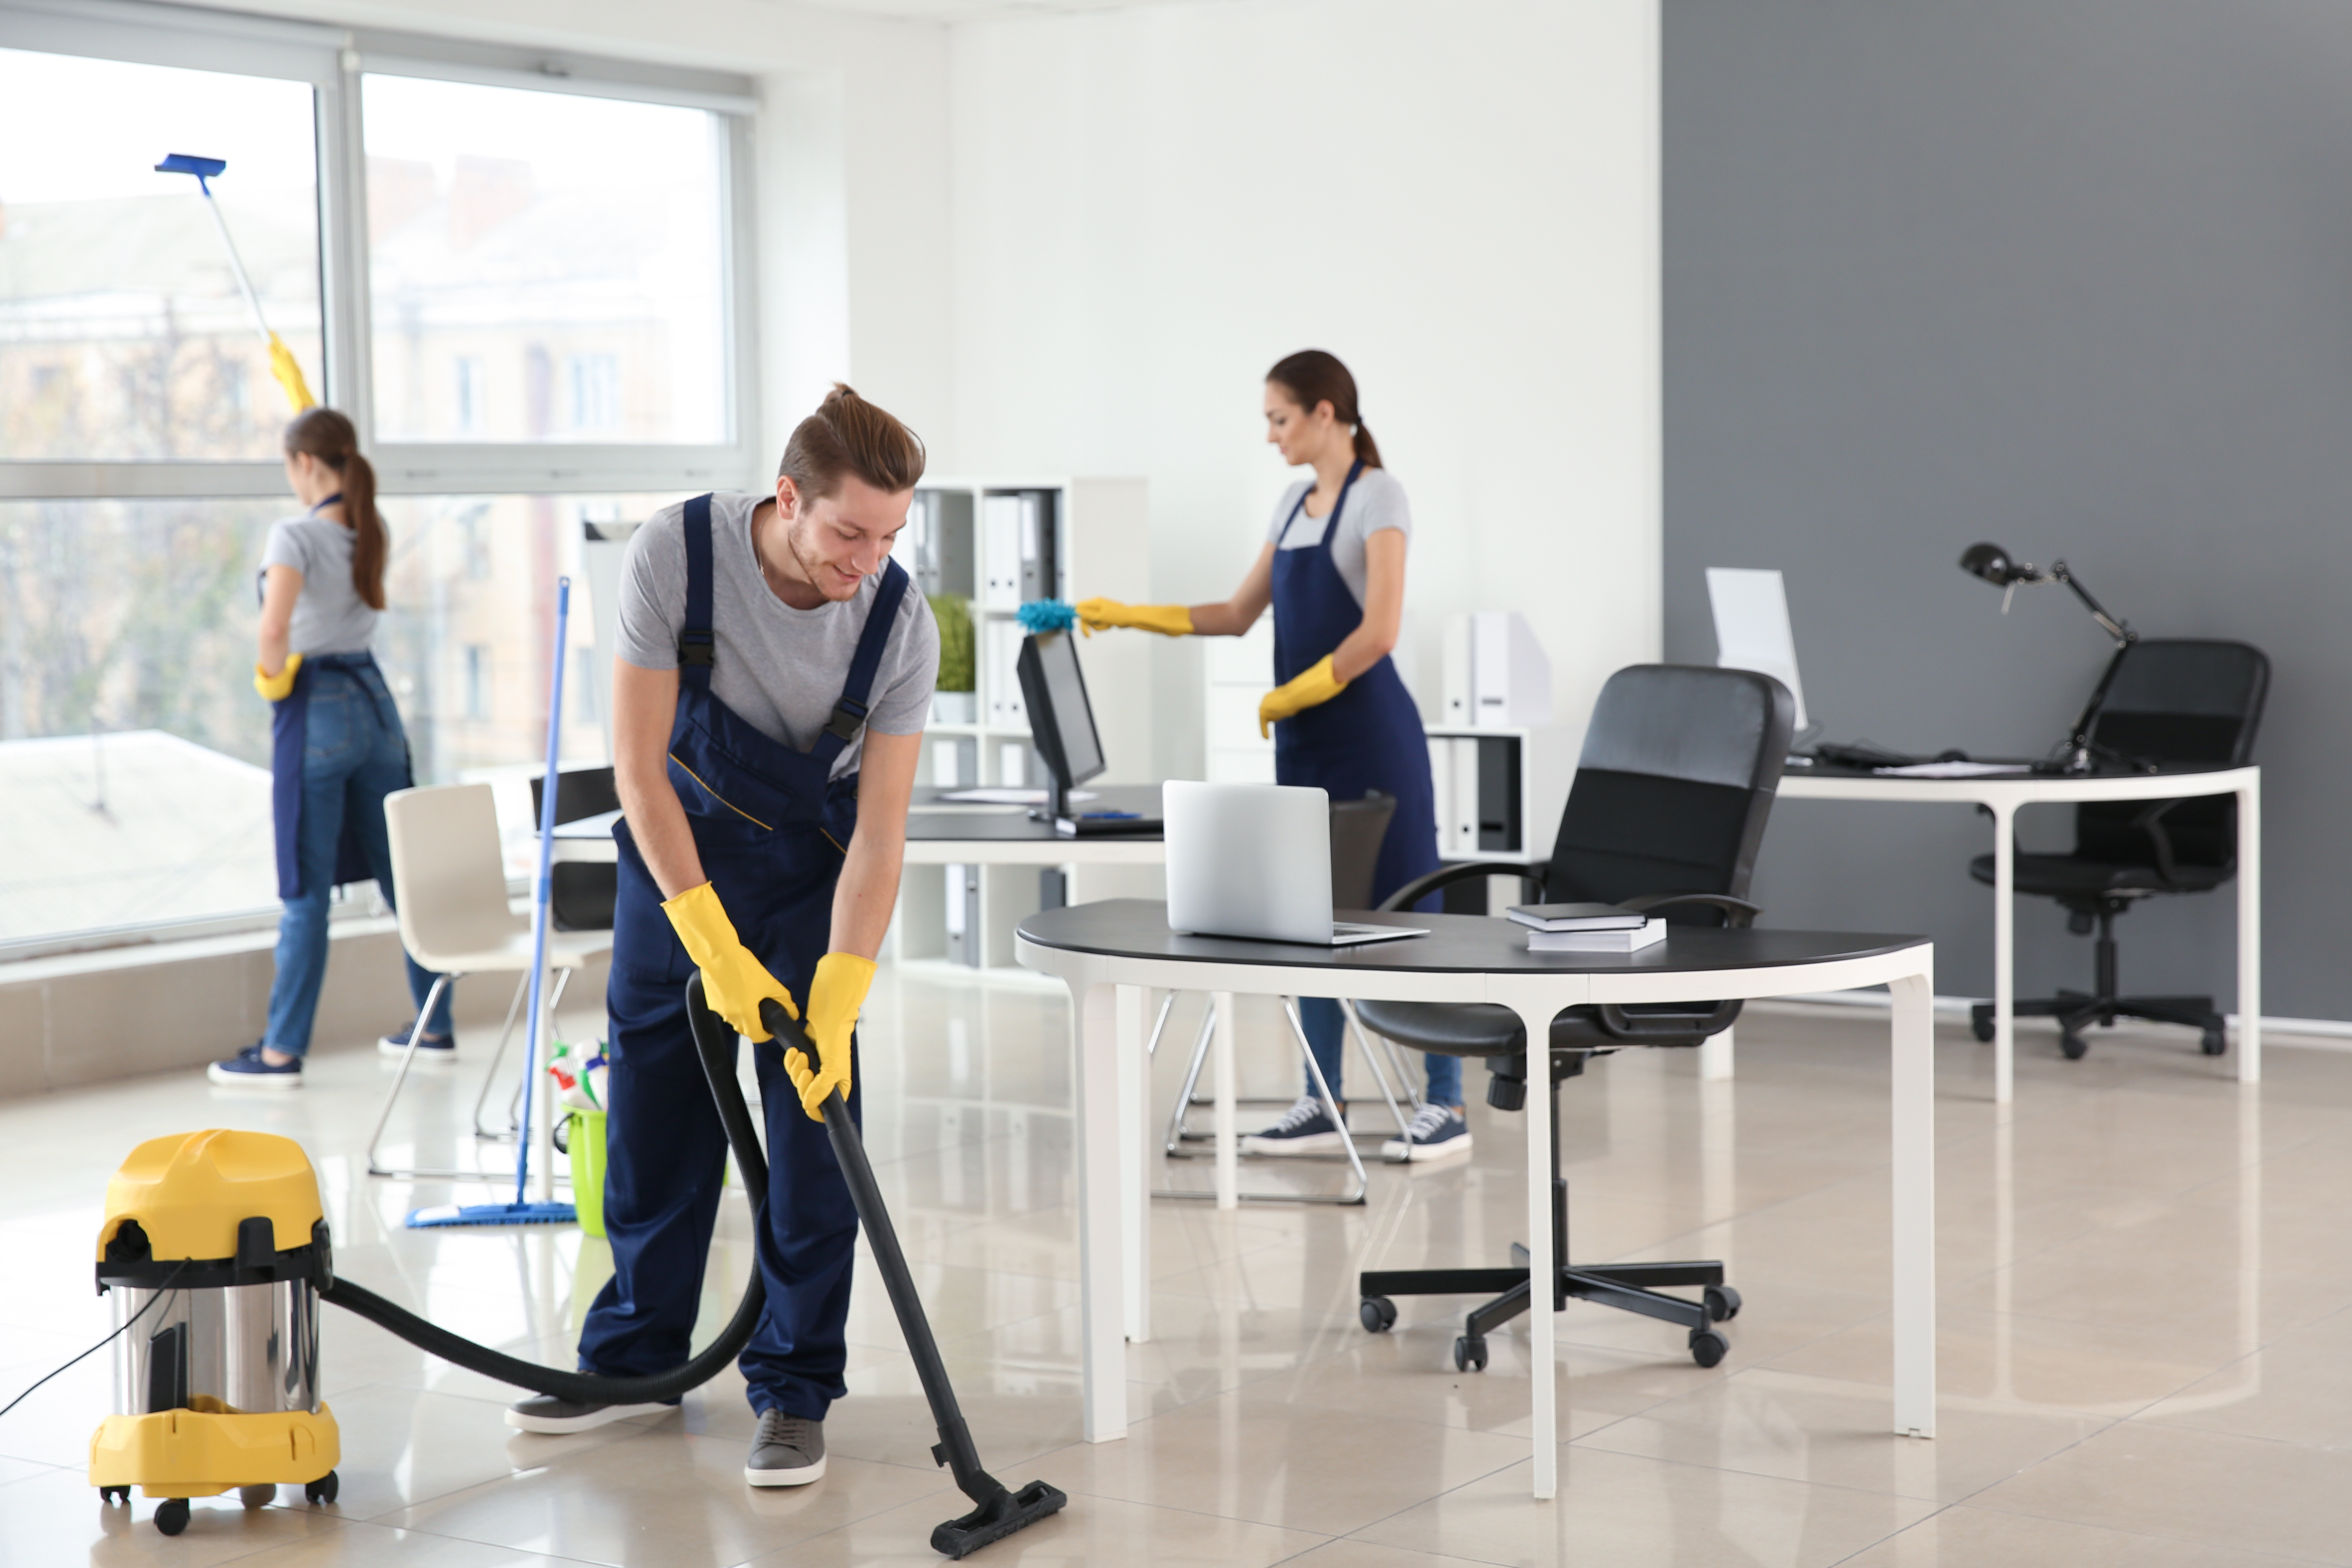 cleaning staff cleaning an office setting